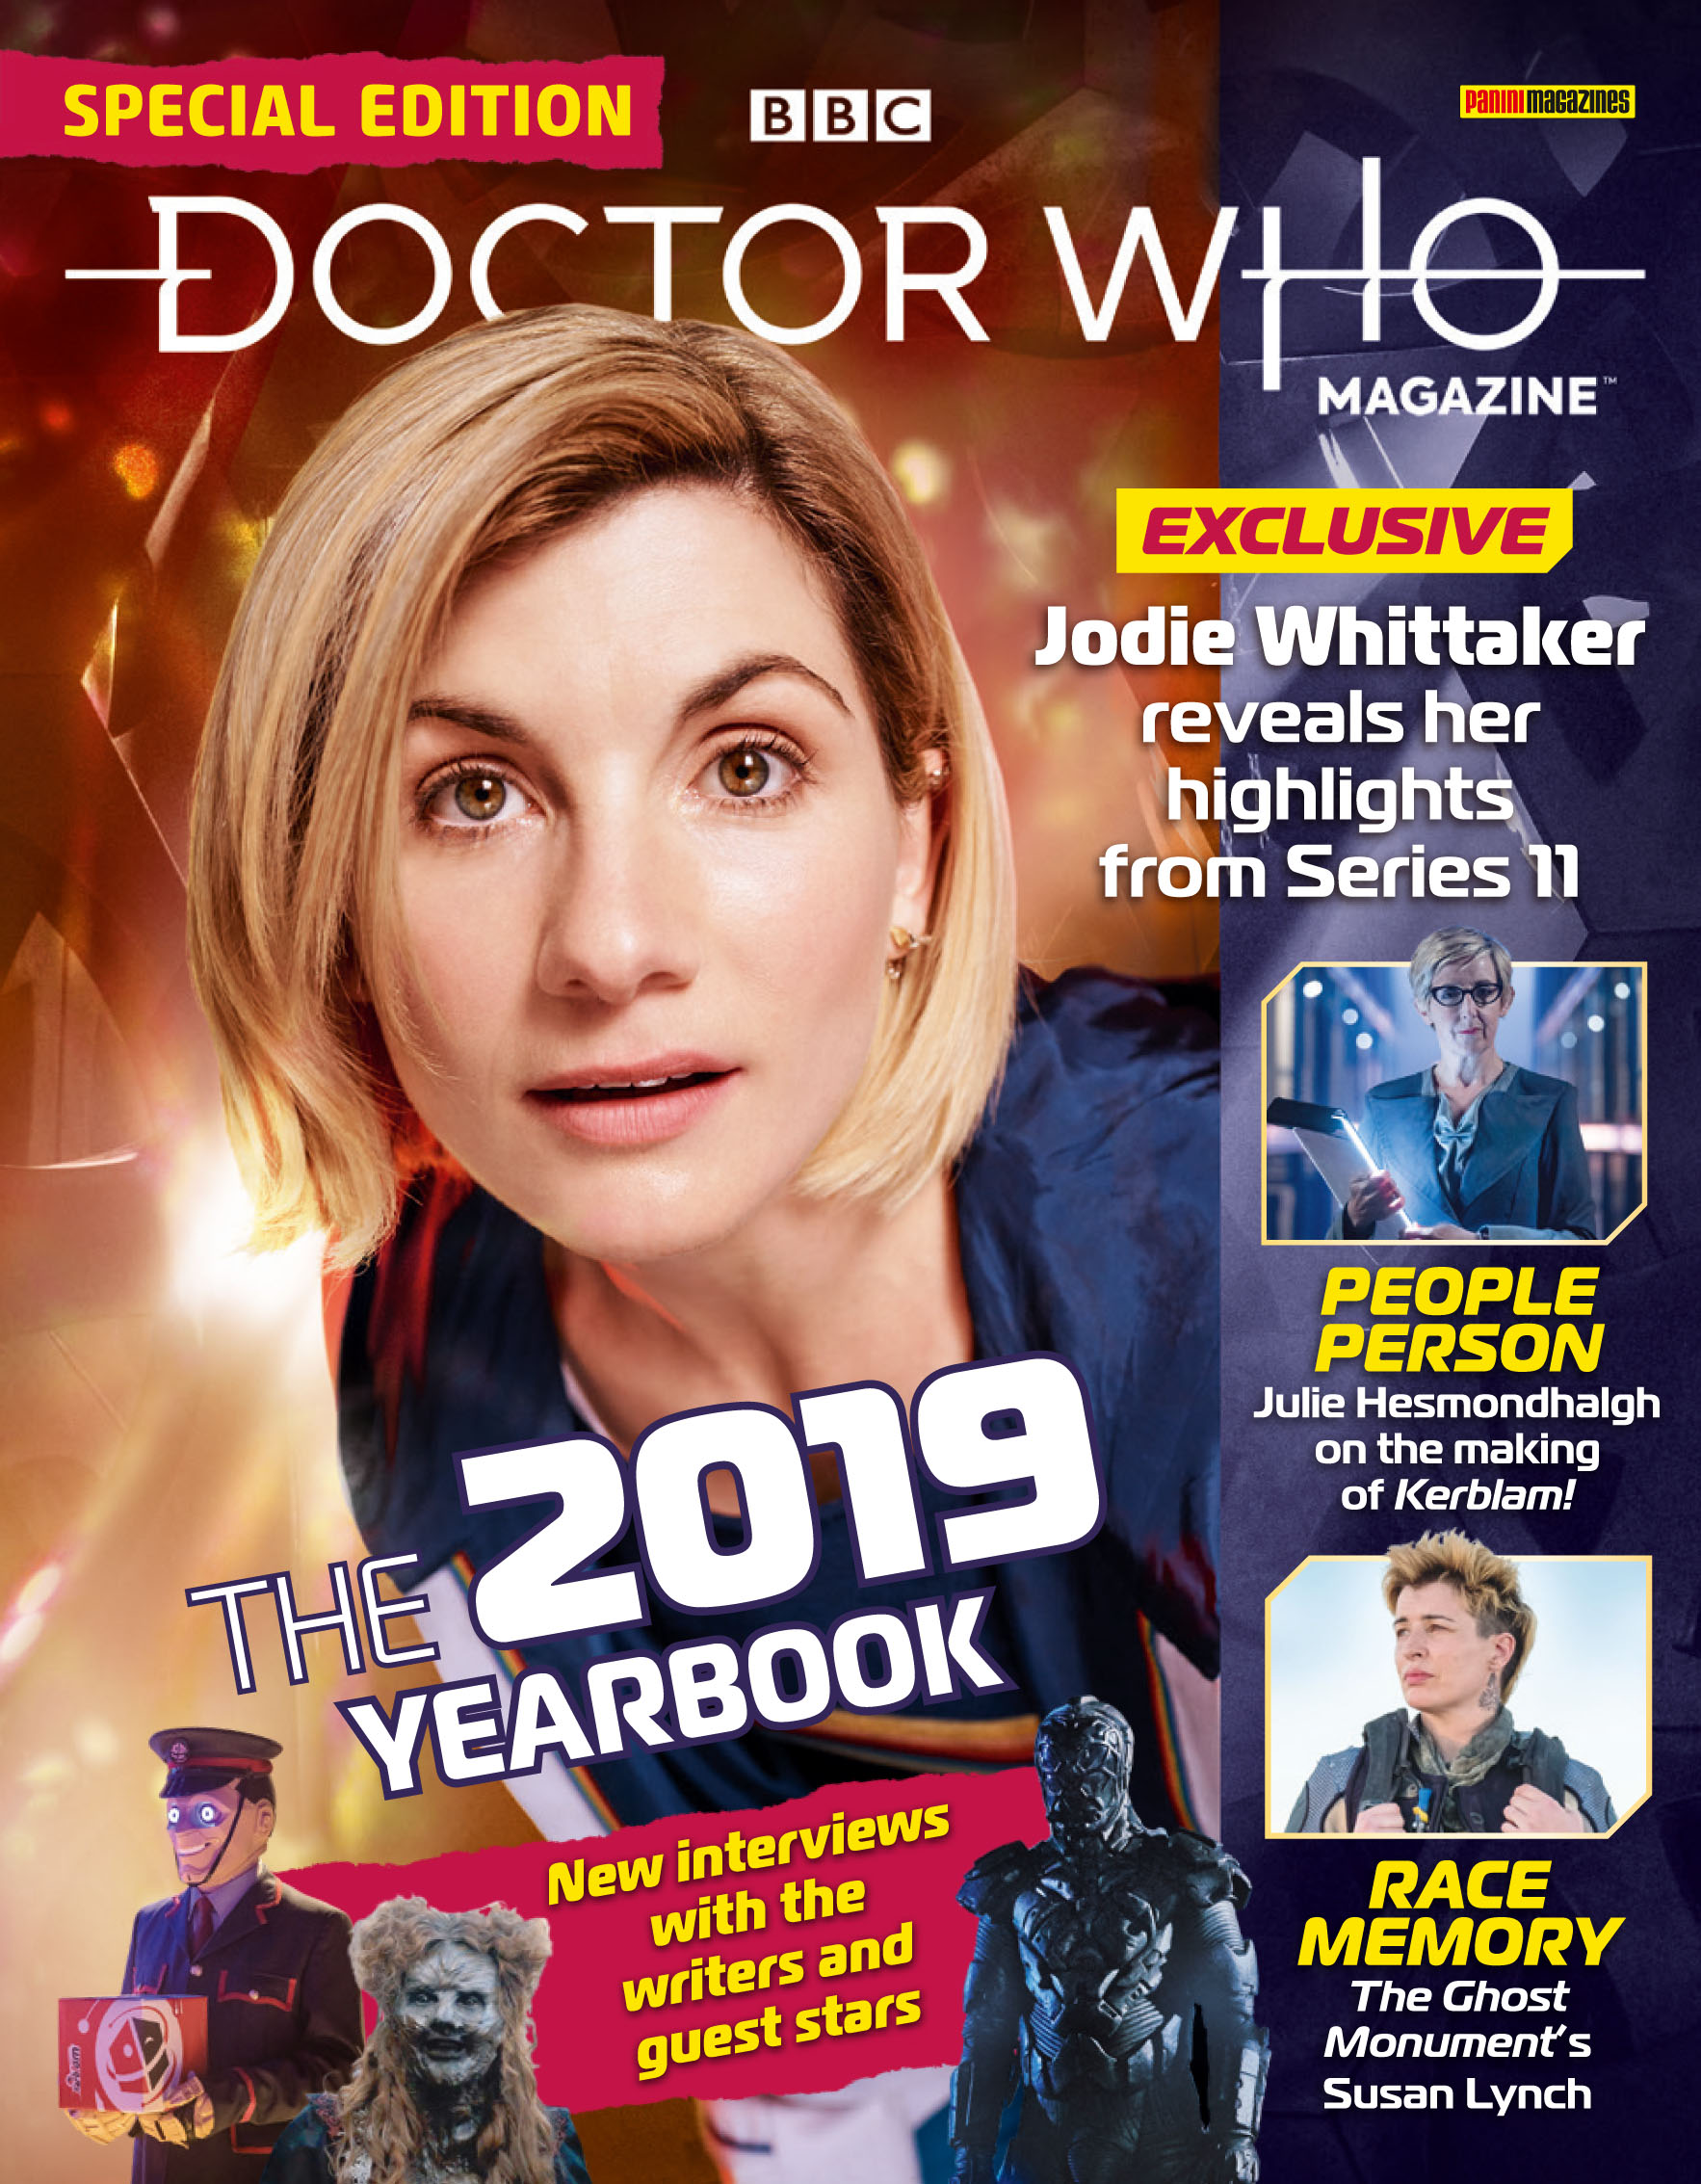 Dr Who Christmas Special 2019.Doctor Who Magazine Special The 2019 Yearbook Doctor Who